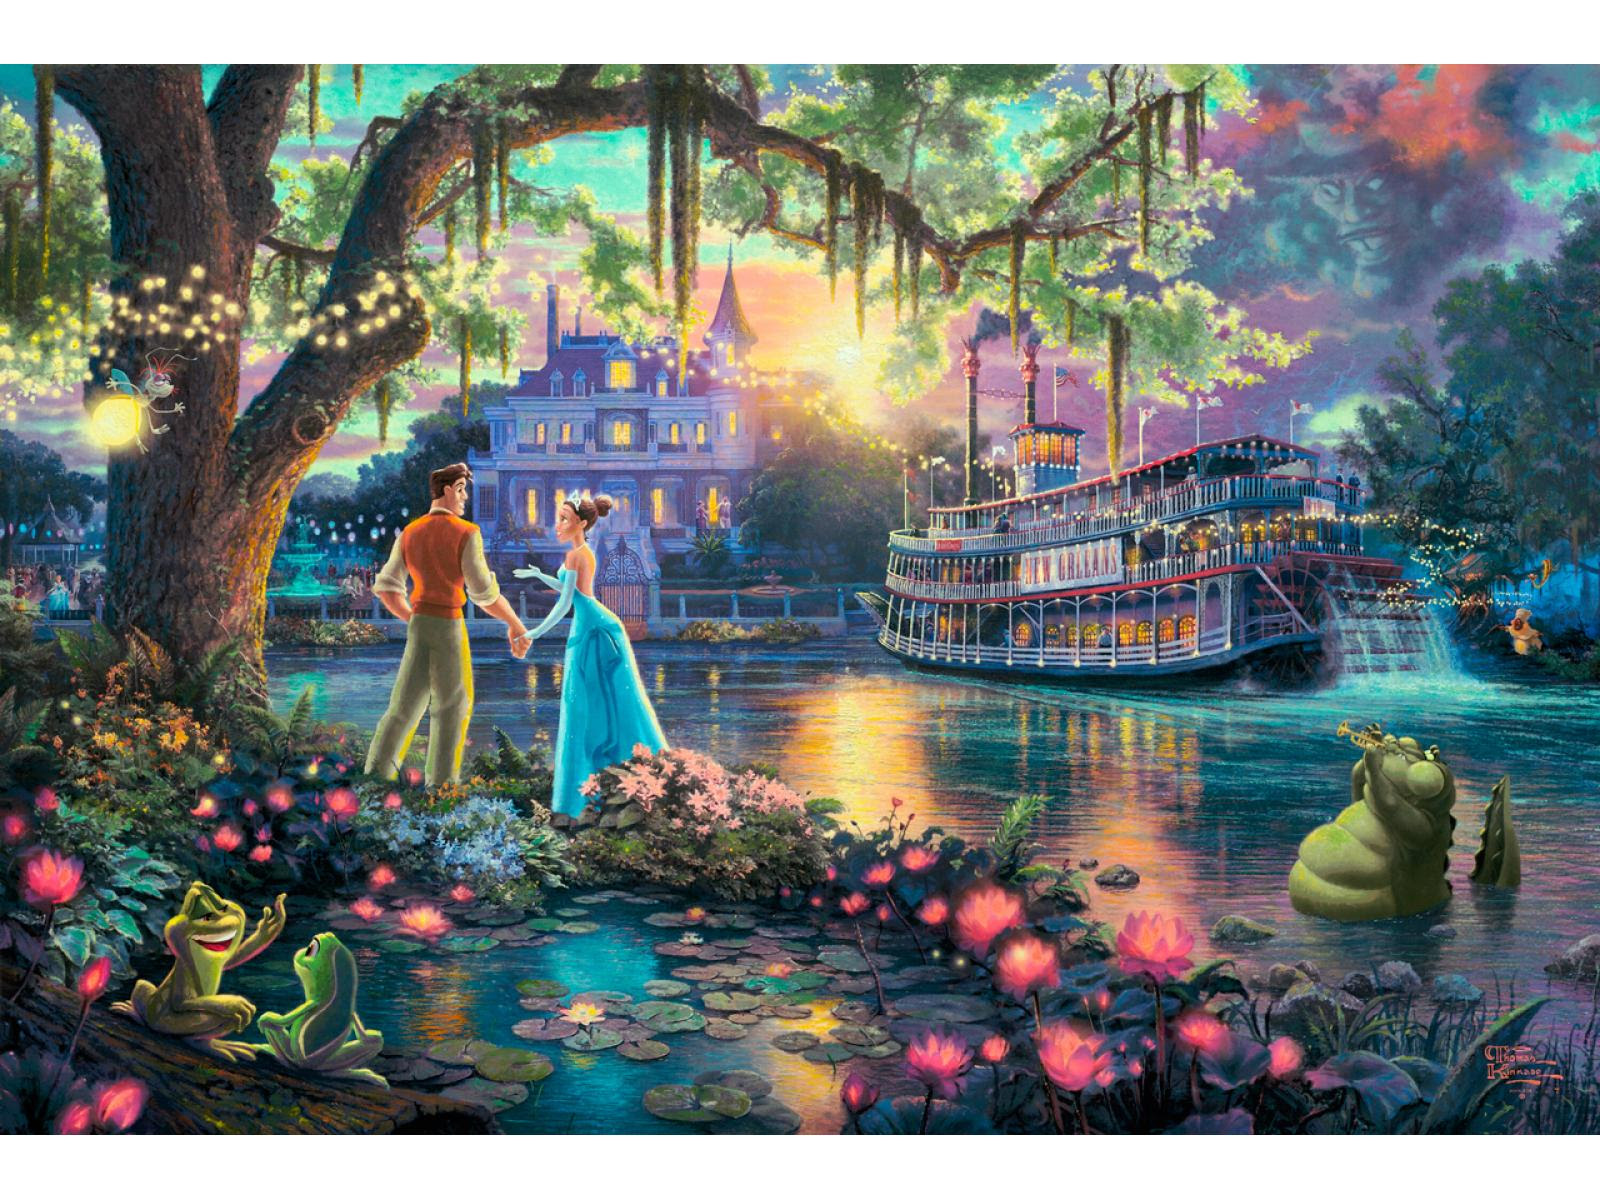 Limited Edition Paper Prints The Princess And The Frog Paper Print